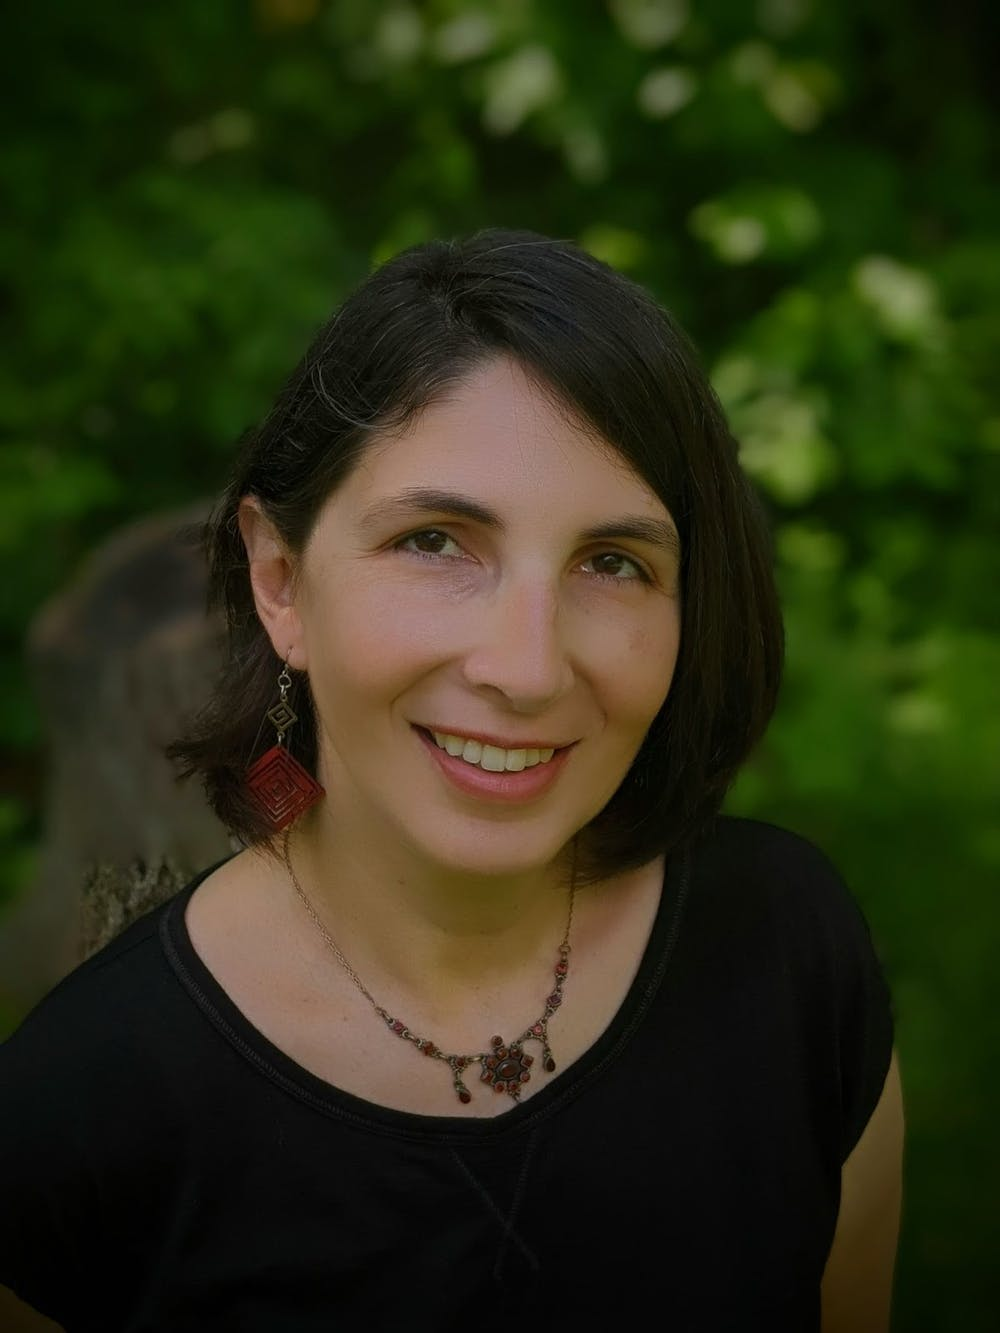 <p>Miami University named its new vice president of institutional diversity and inclusion, Cristina Alcalde. She hopes to make Miami a truly inclusive environment by meeting with students, faculty and the Oxford community.</p>